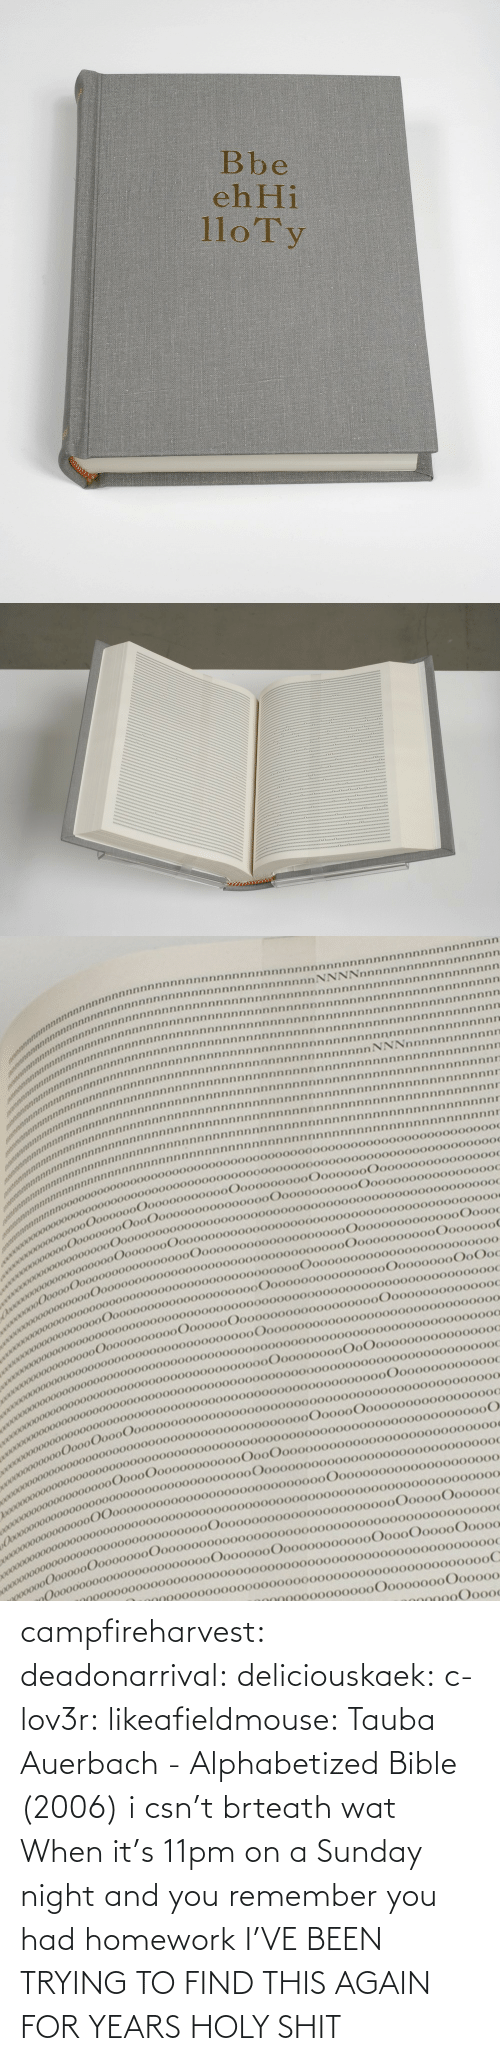 Homework: campfireharvest:  deadonarrival:  deliciouskaek:  c-lov3r:  likeafieldmouse:  Tauba Auerbach- Alphabetized Bible (2006)  i csn't brteath  wat  When it's 11pm on a Sunday night and you remember you had homework   I'VE BEEN TRYING TO FIND THIS AGAIN FOR YEARS HOLY SHIT